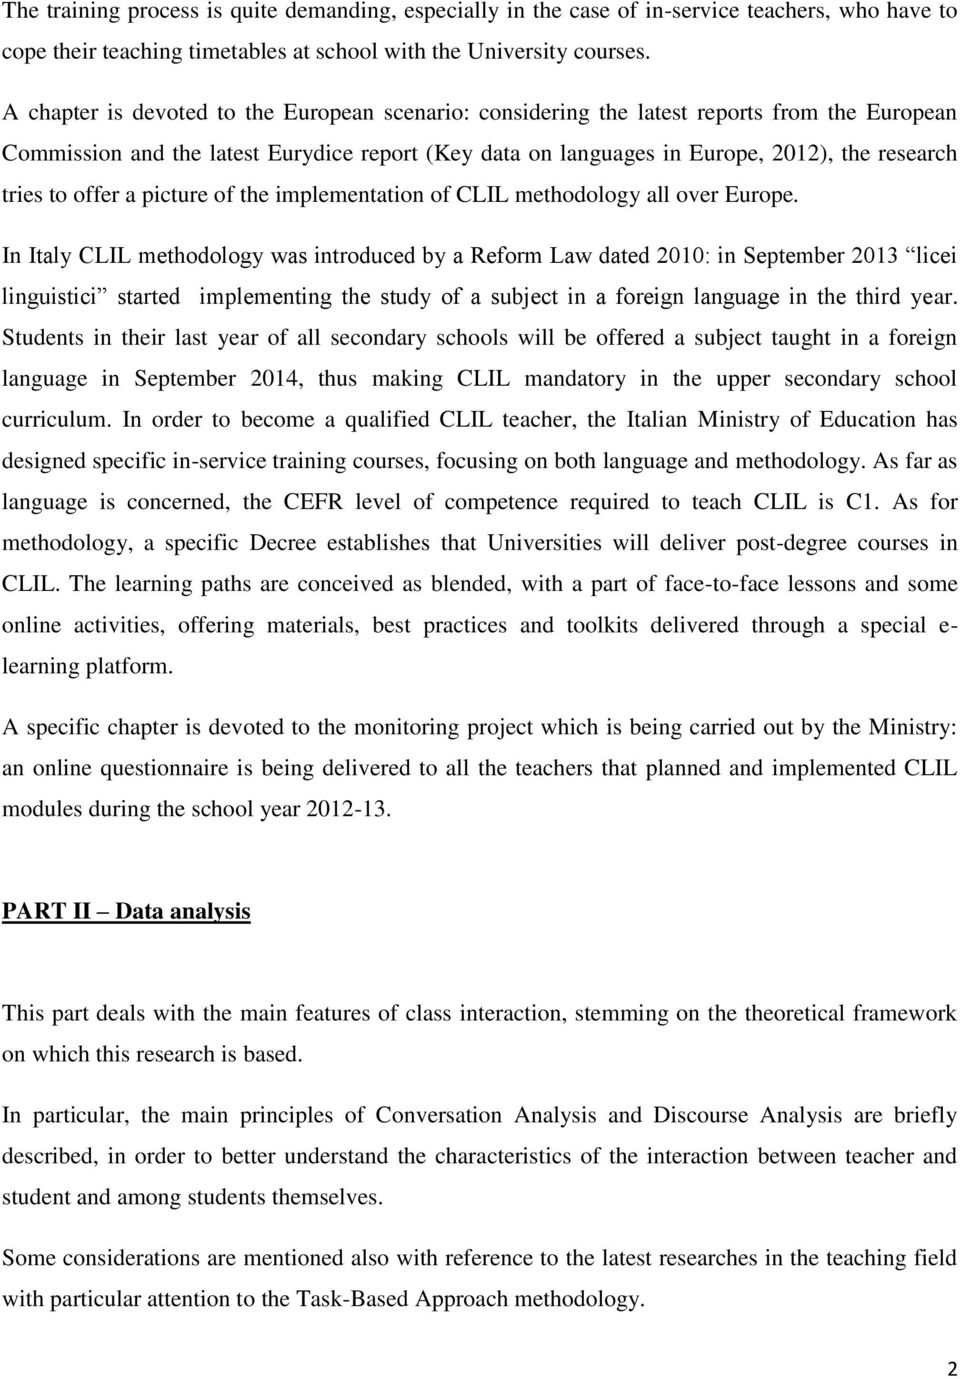 to offer a picture of the implementation of CLIL methodology all over Europe.